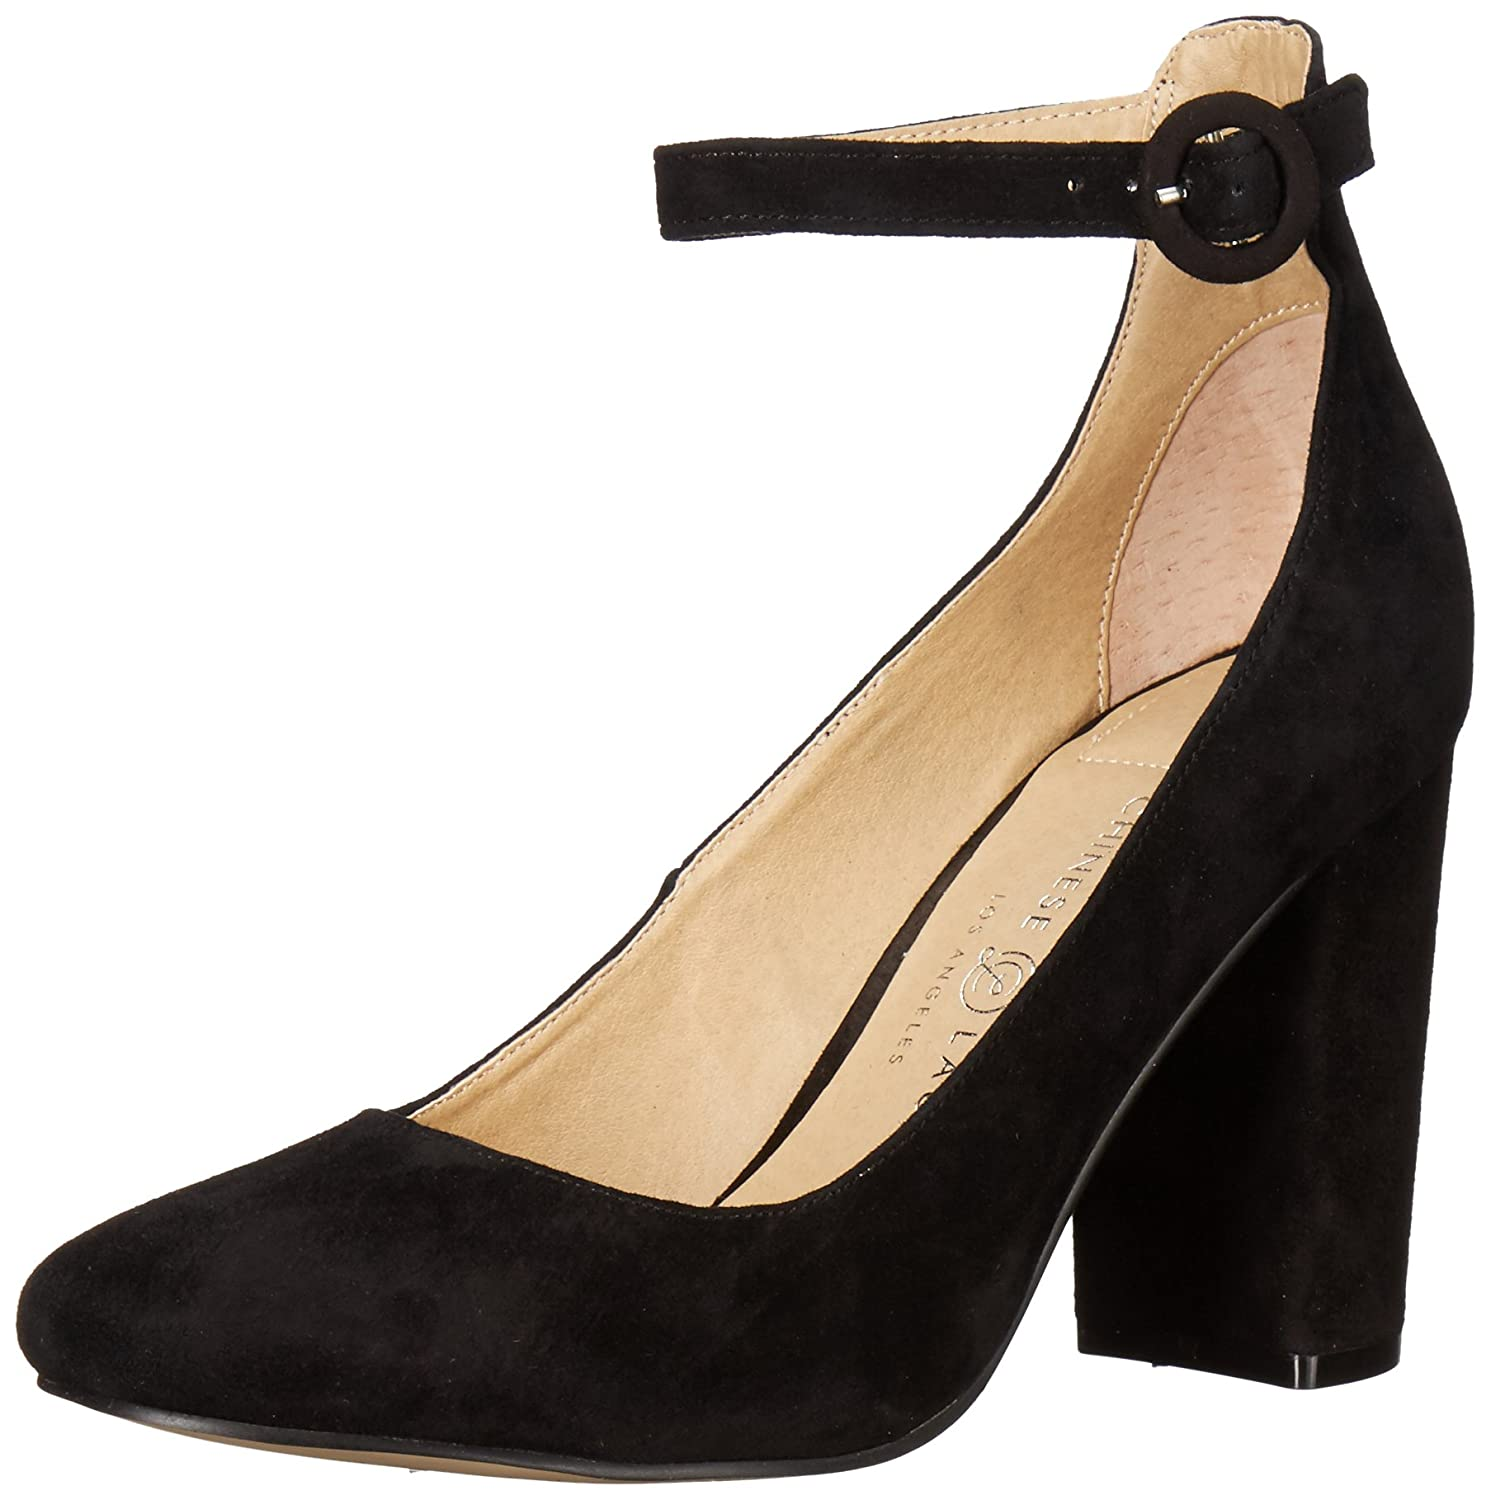 Chinese Laundry Women's Veronika Dress Pump B0713ZH5WQ 6 B(M) US|Black Suede